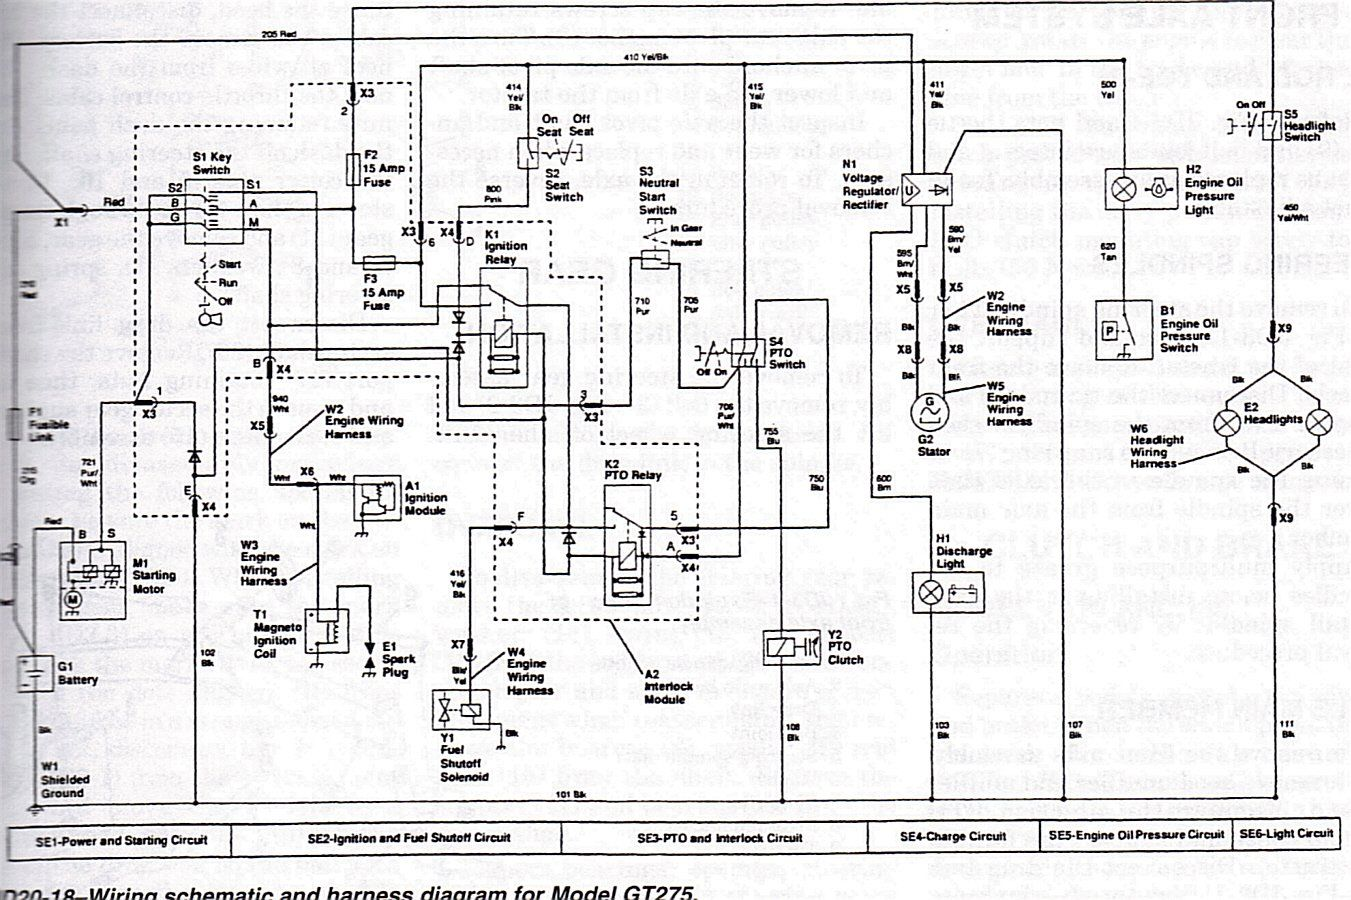 22 Hp Kawasaki Wiring Diagram - Wiring Schematics Kawasaki Hp Wiring Diagram on